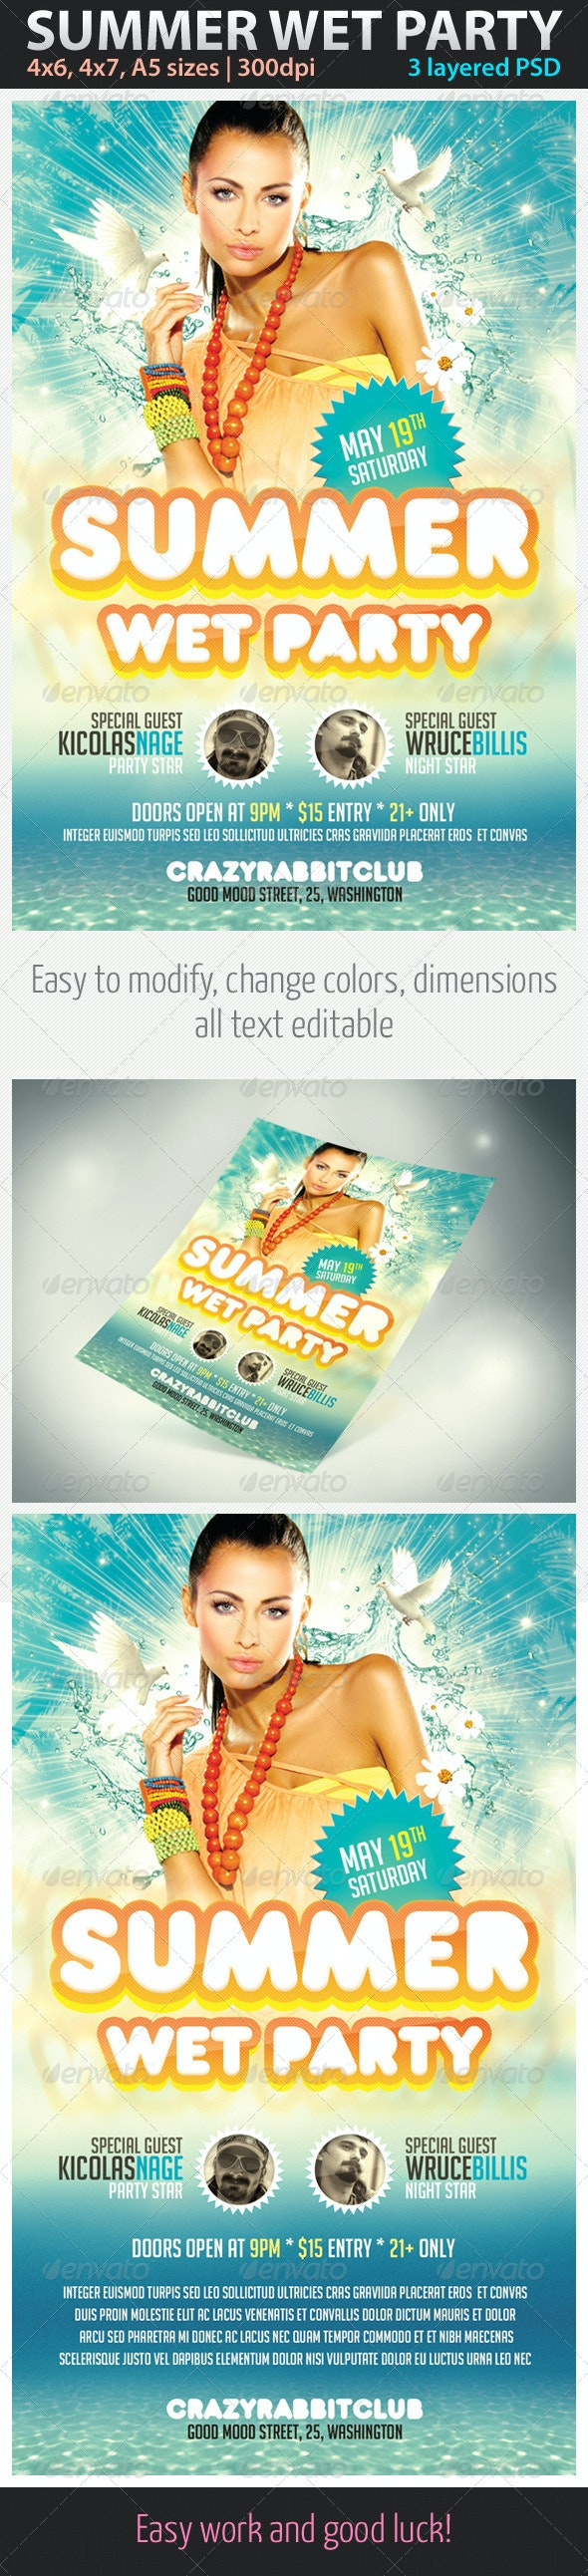 Summer Wet Party Flyer - Clubs & Parties Events